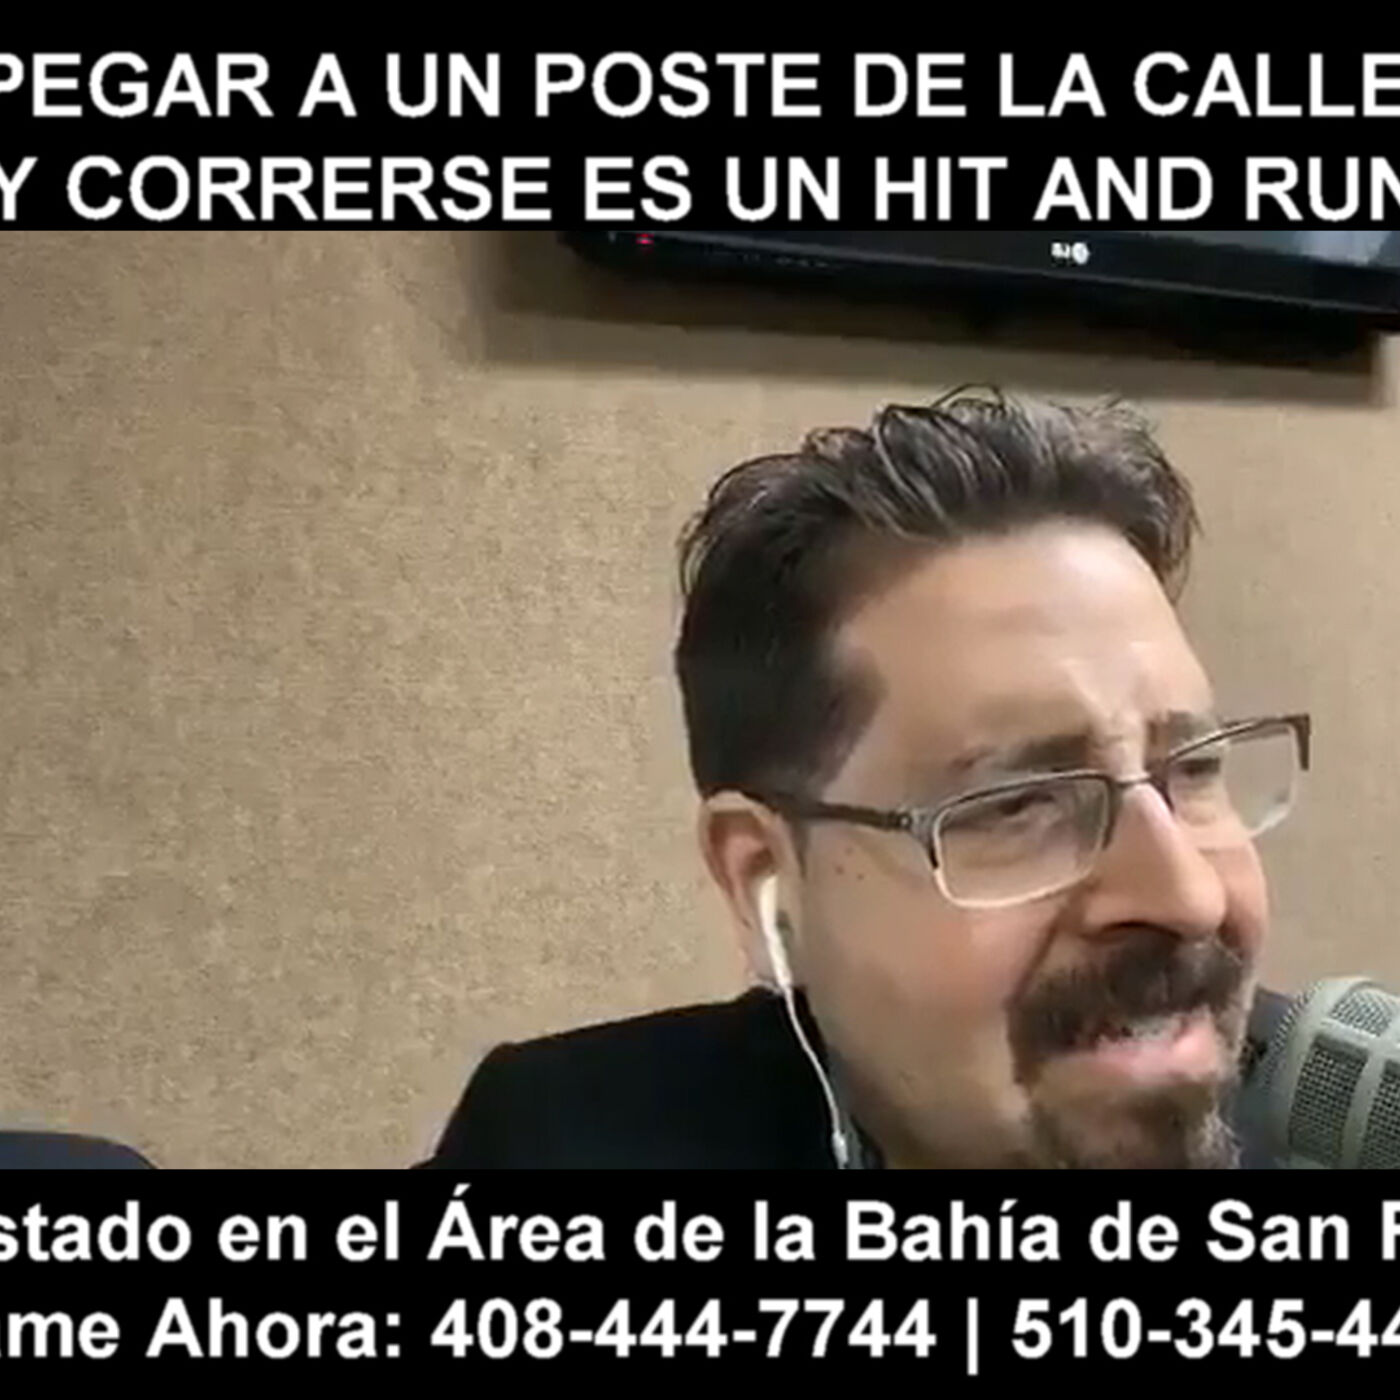 Pegar a un poste de la calle y correrse es un Hit and Run